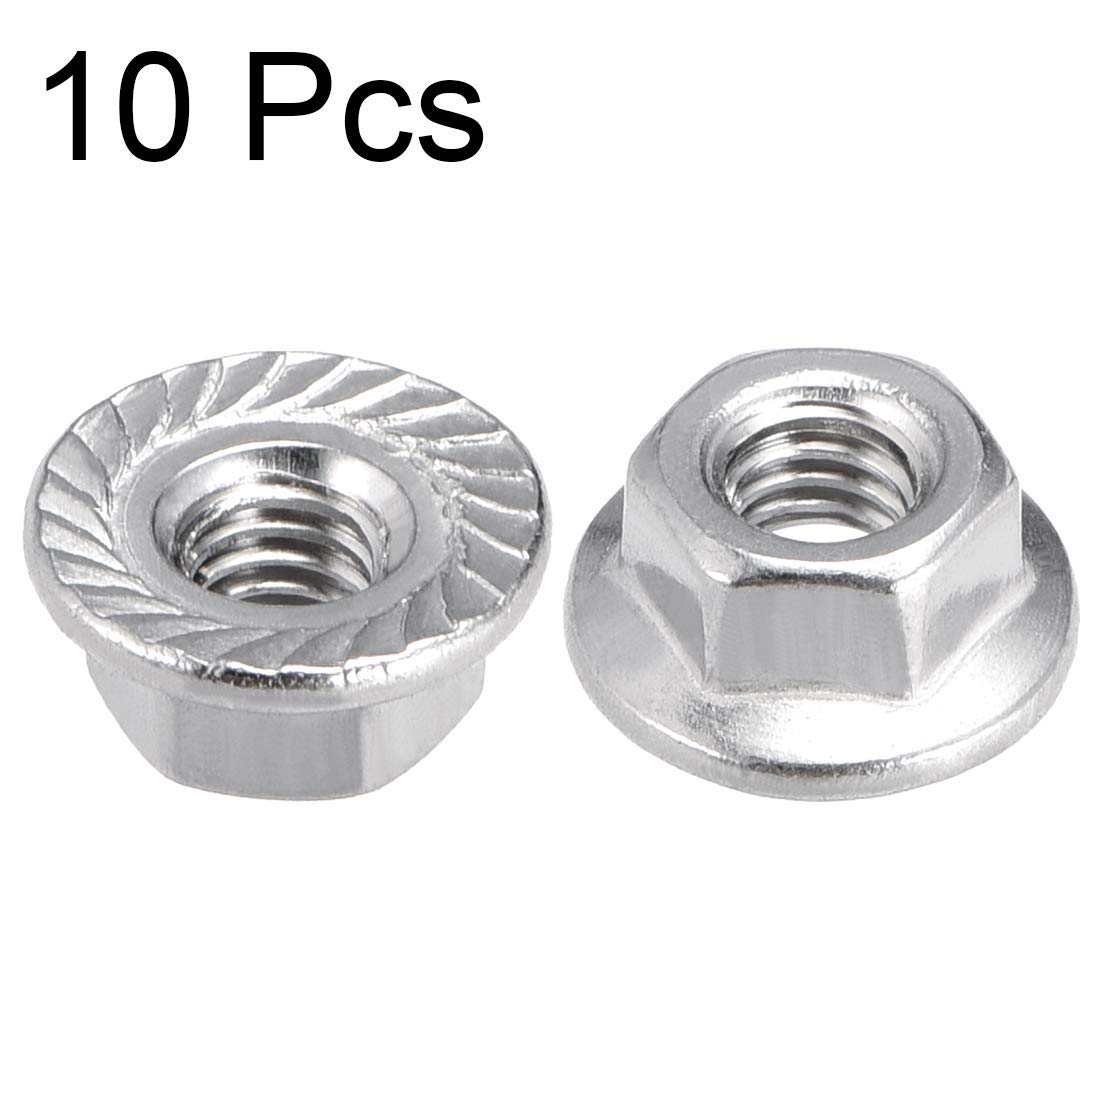 M4 Toothed Flange Hexagonal Safety Nuts 316 Stainless Steel 10 Pieces